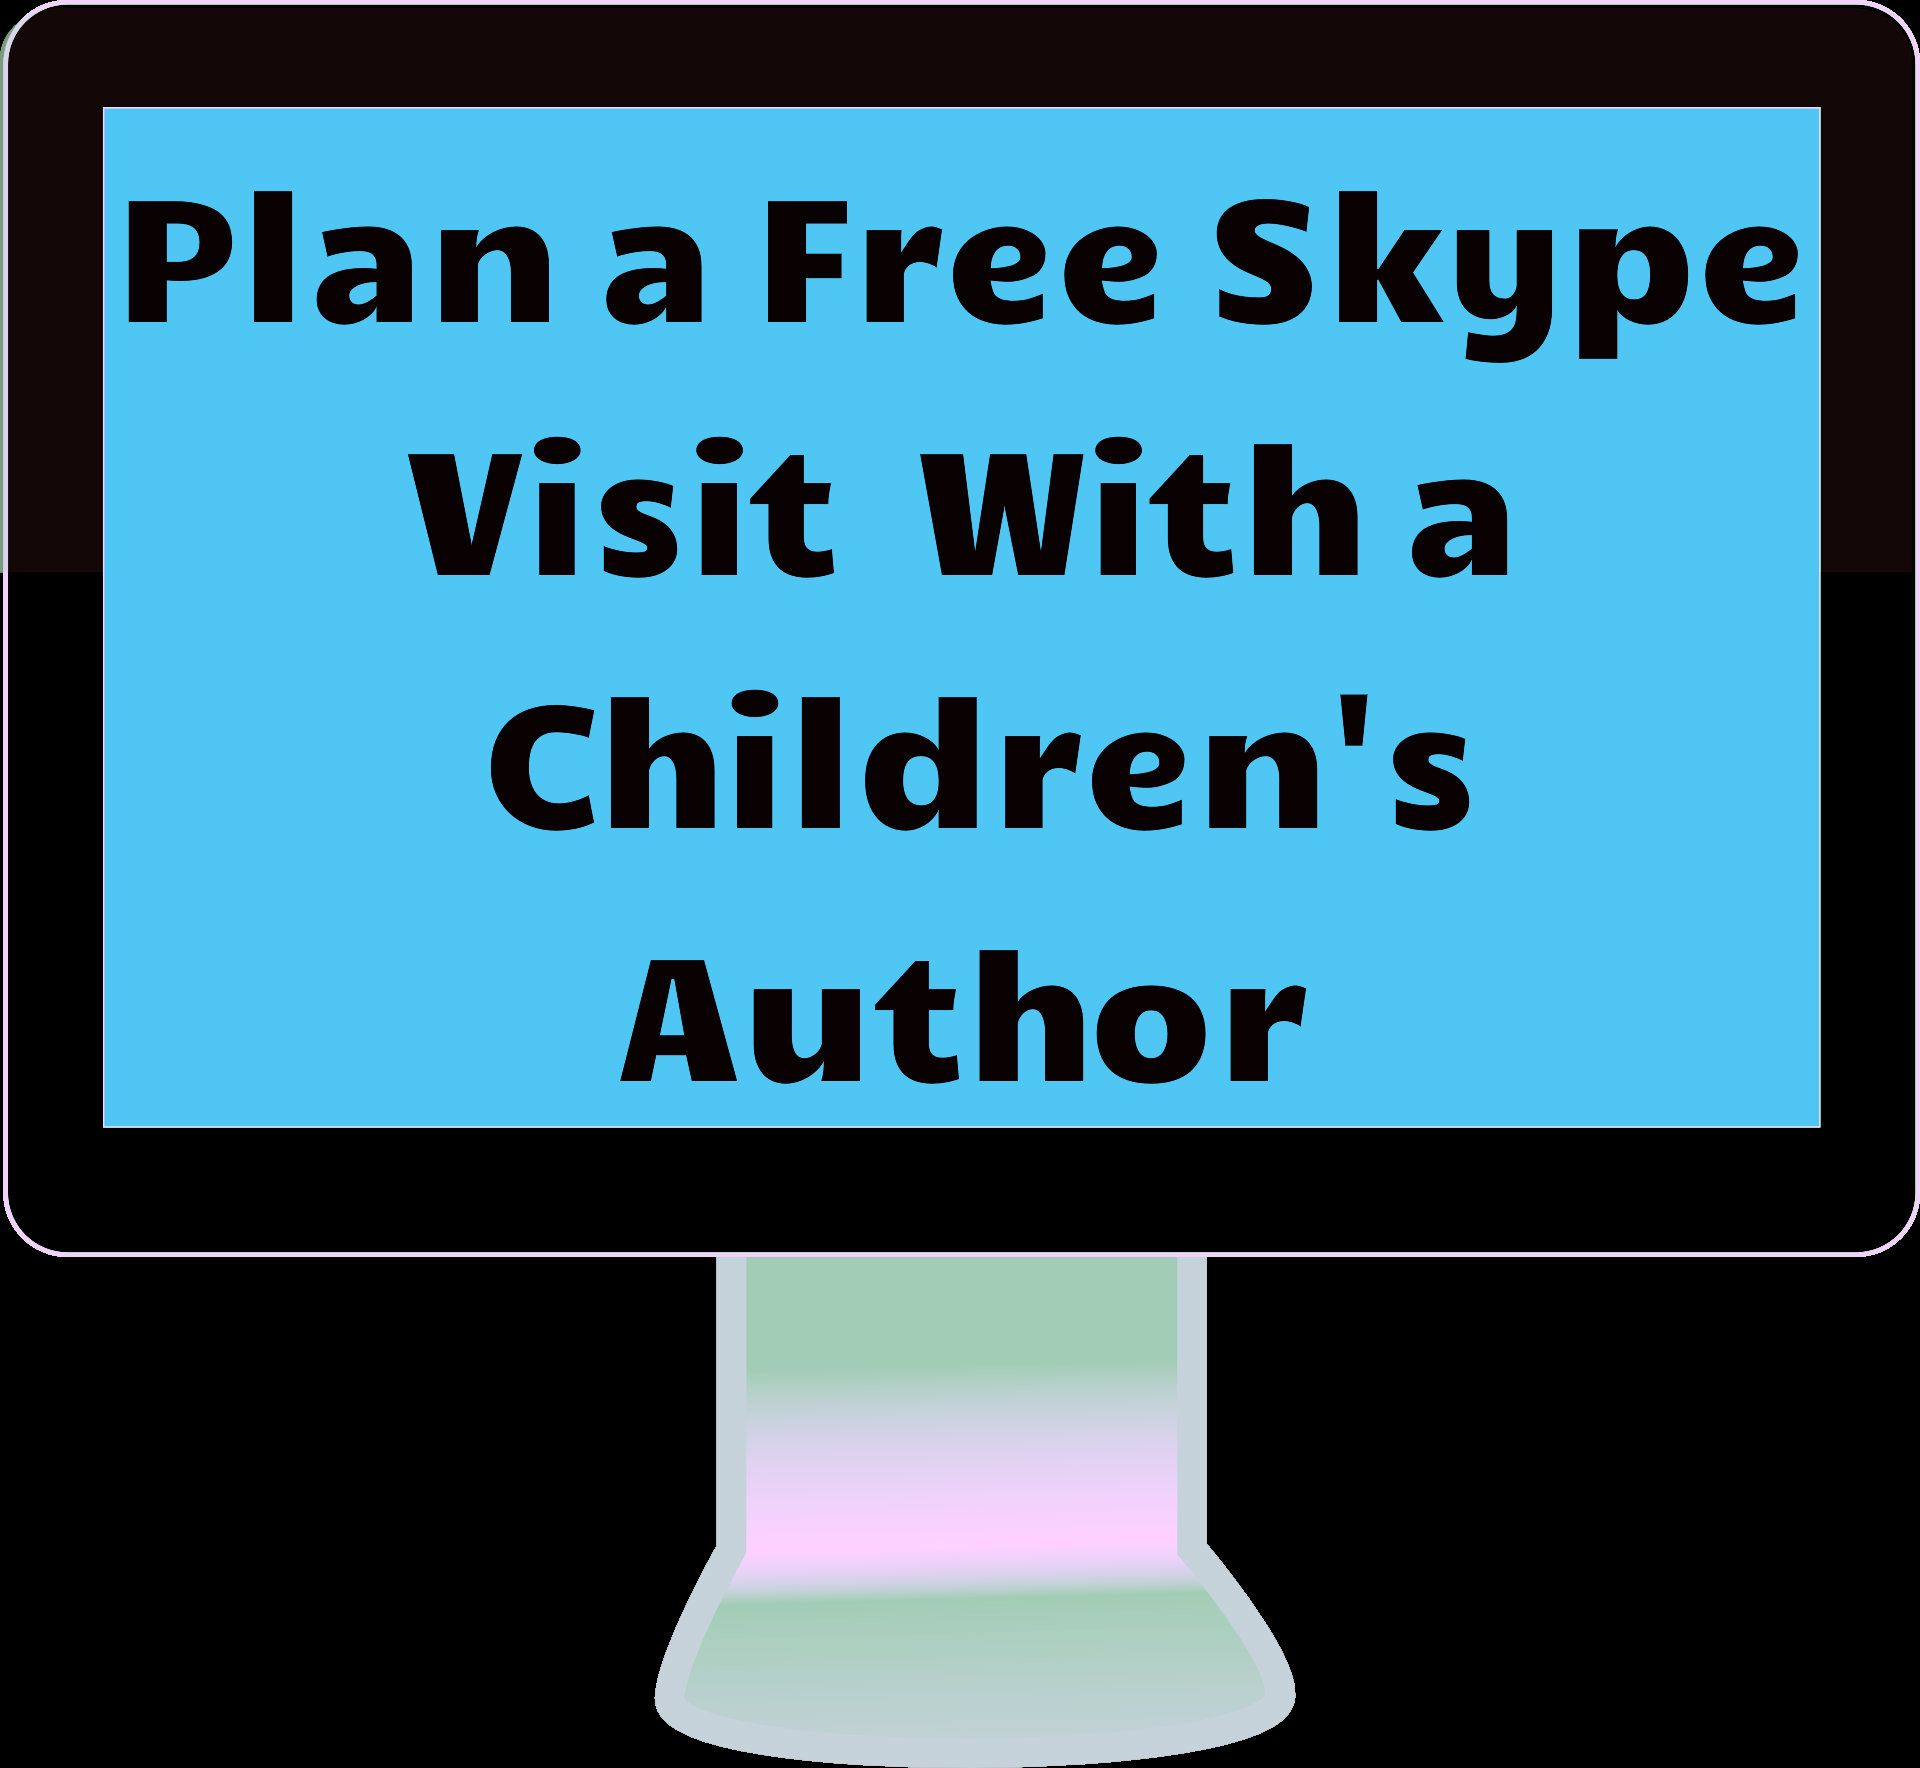 Skype An Author Plan A Skype Visit With A Children S Author For Free Read More To Find Out All